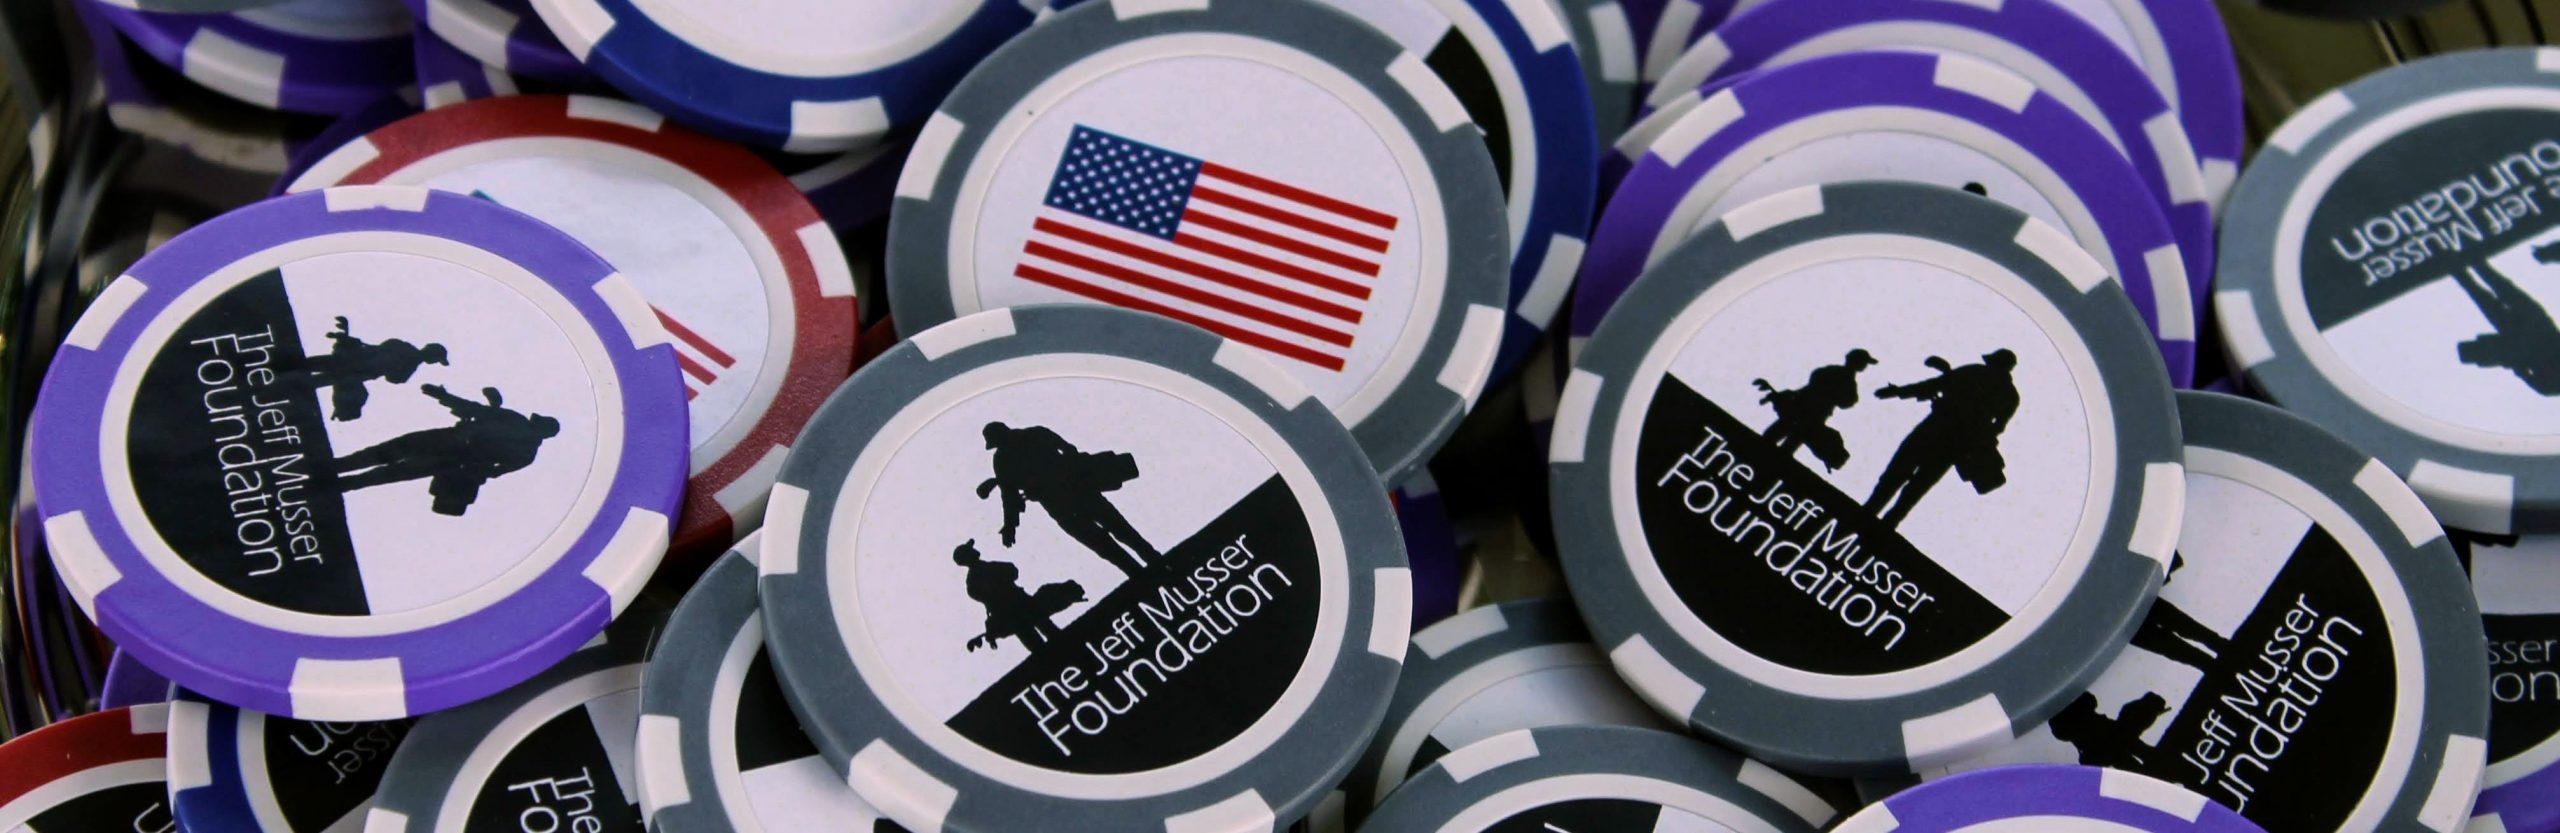 Ball markers with Jeff Musser Foundation logo